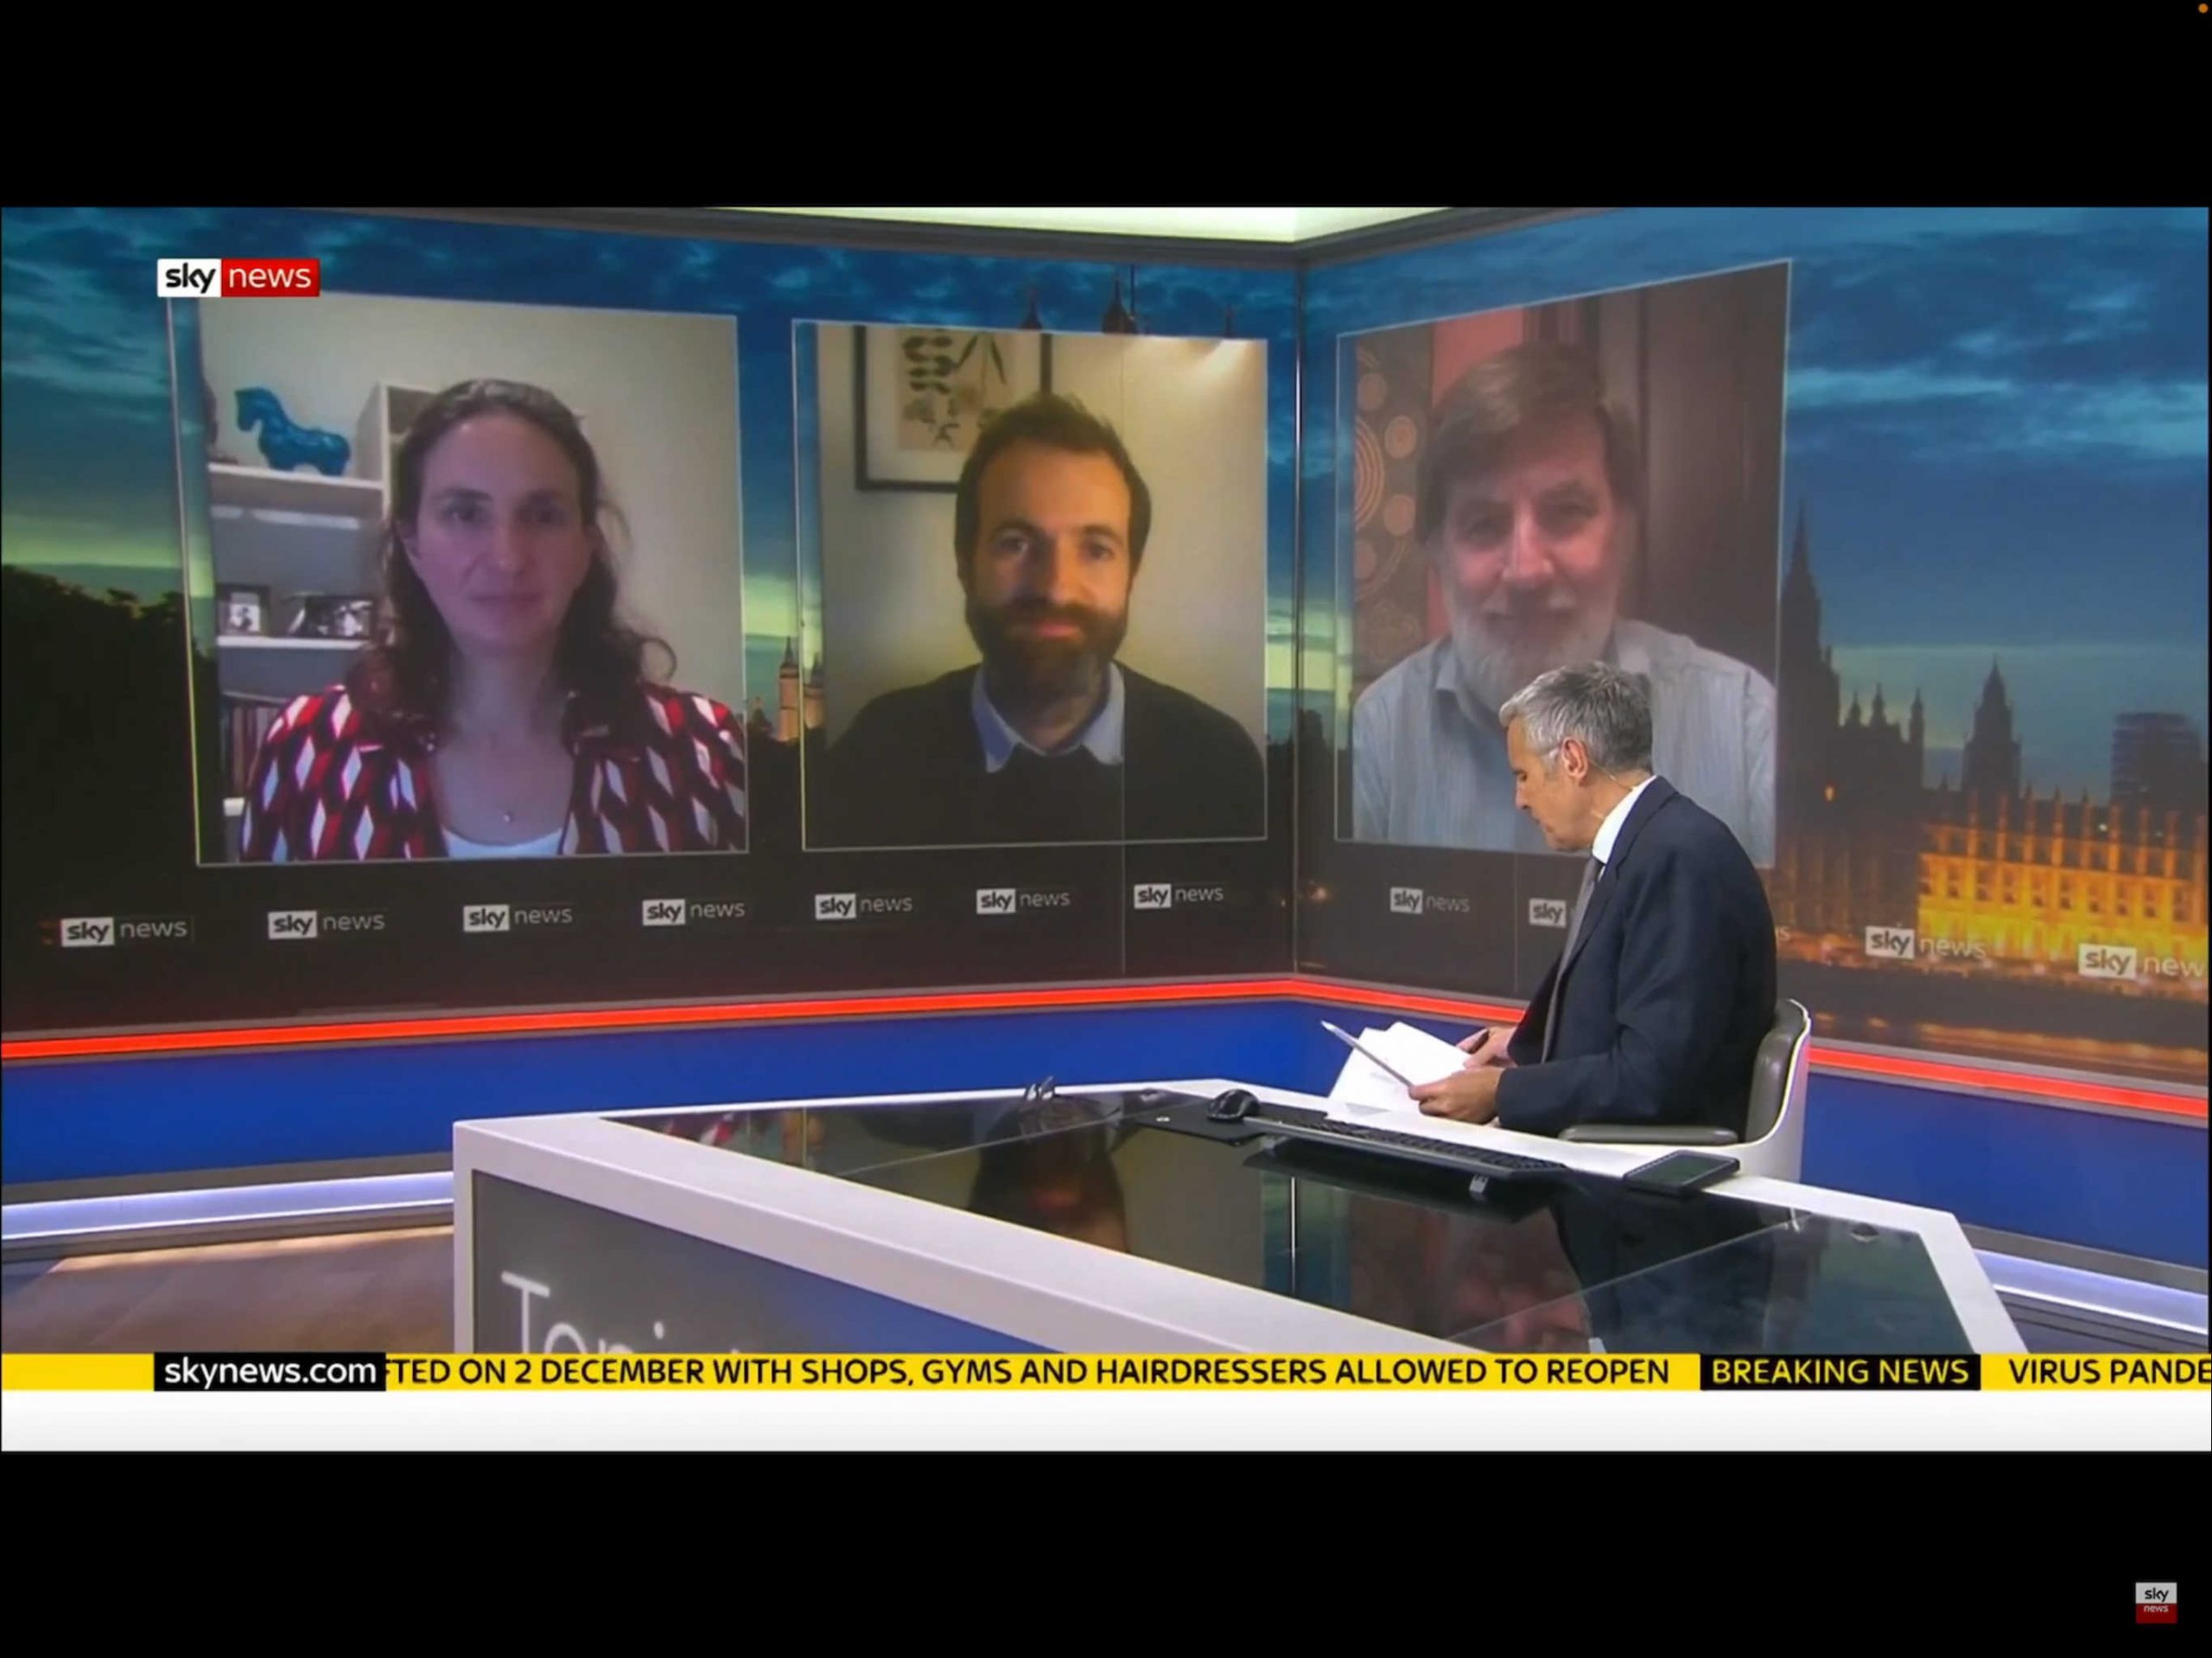 Kit yates and Christina Pagel discuss Covid on Sky News